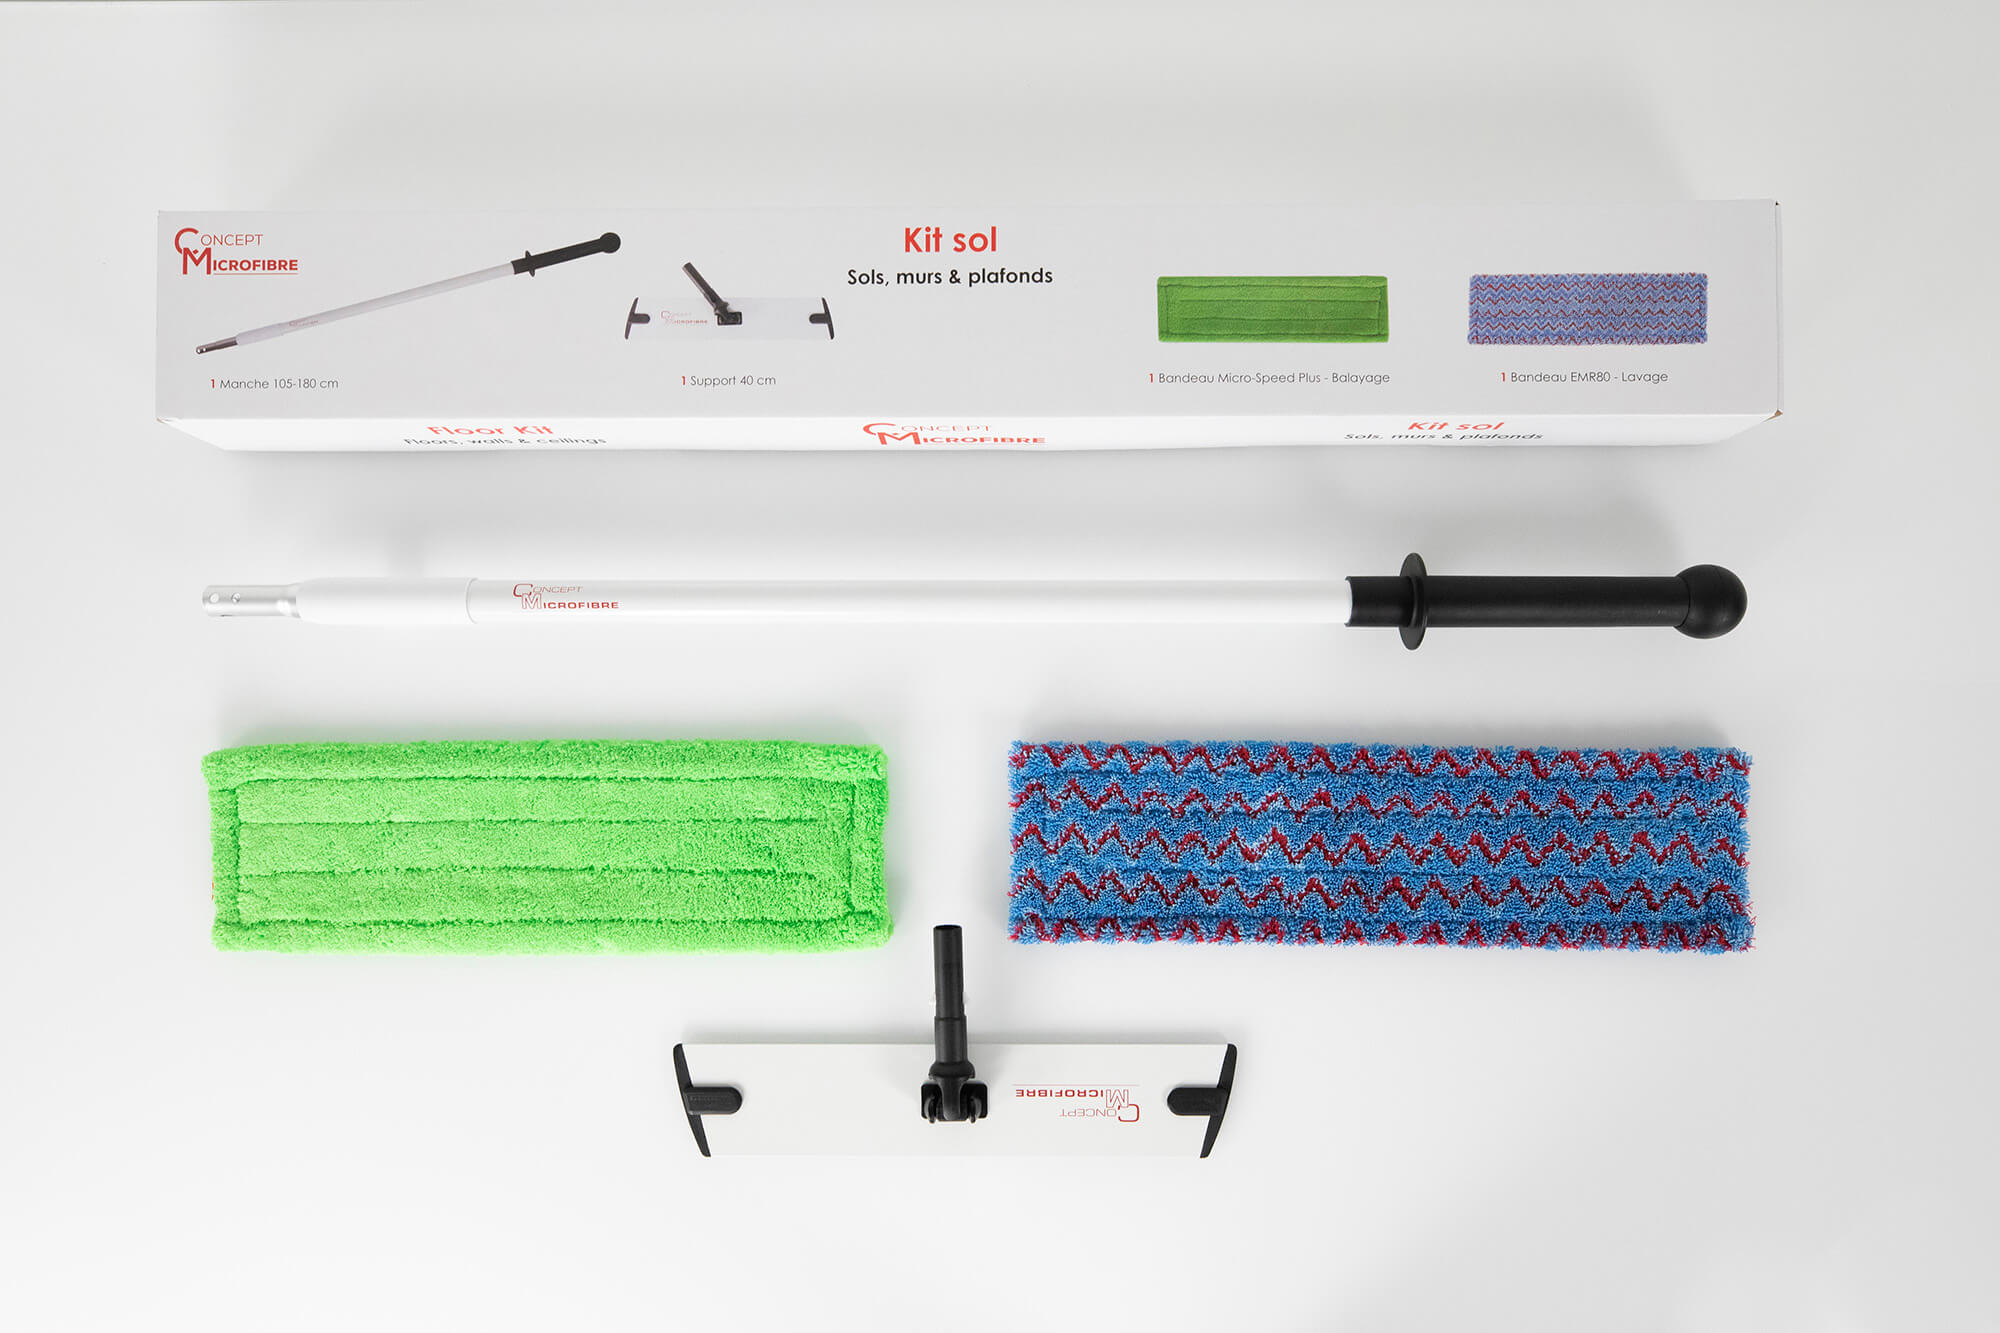 PRO FLOOR KIT - Concept Microfibre cleaning and training equipment